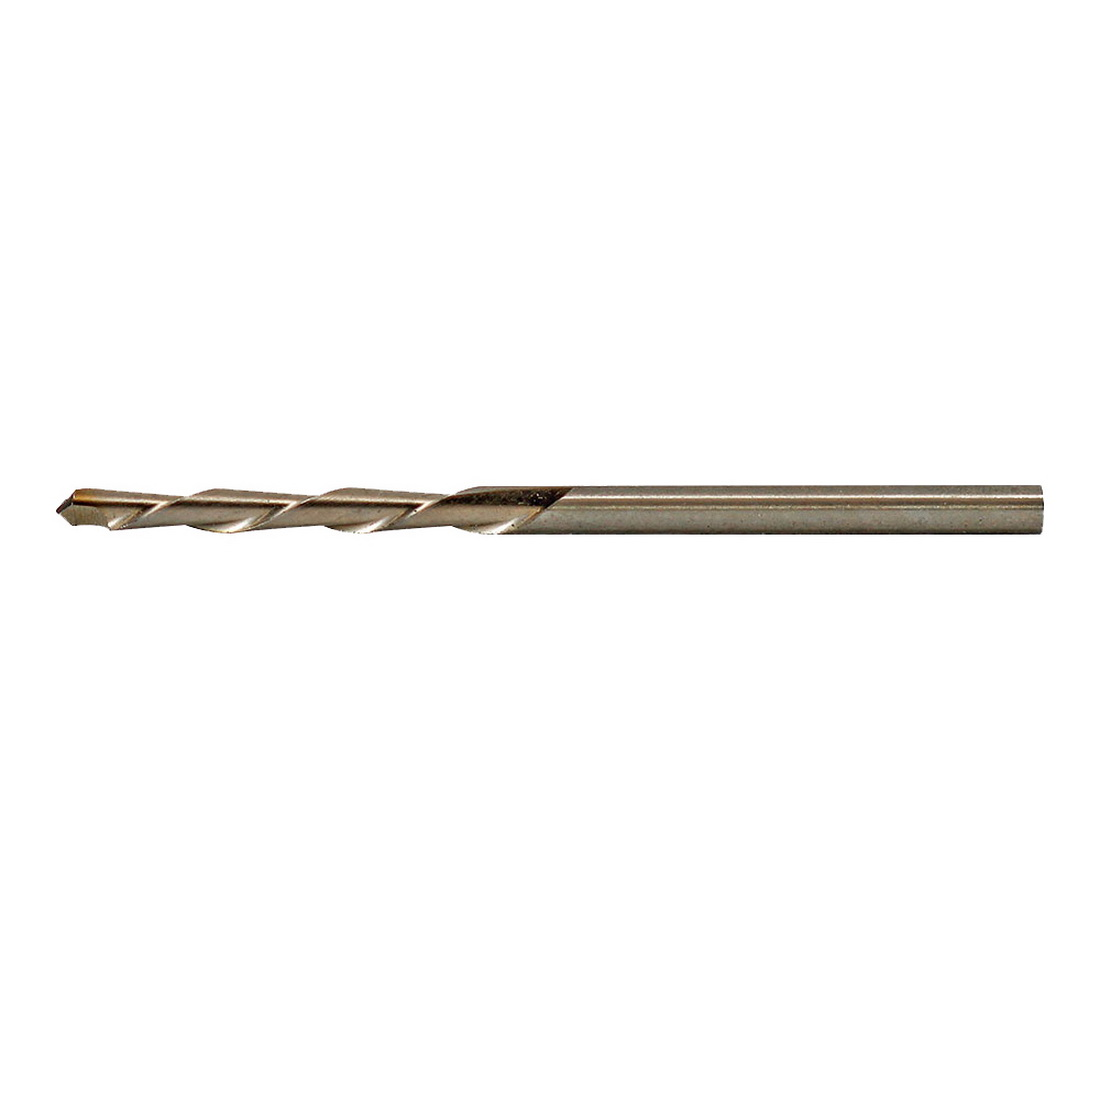 Guide Bearing Drywall Cutout Bit 1/8in x 65mm High Speed Steel 733229-0